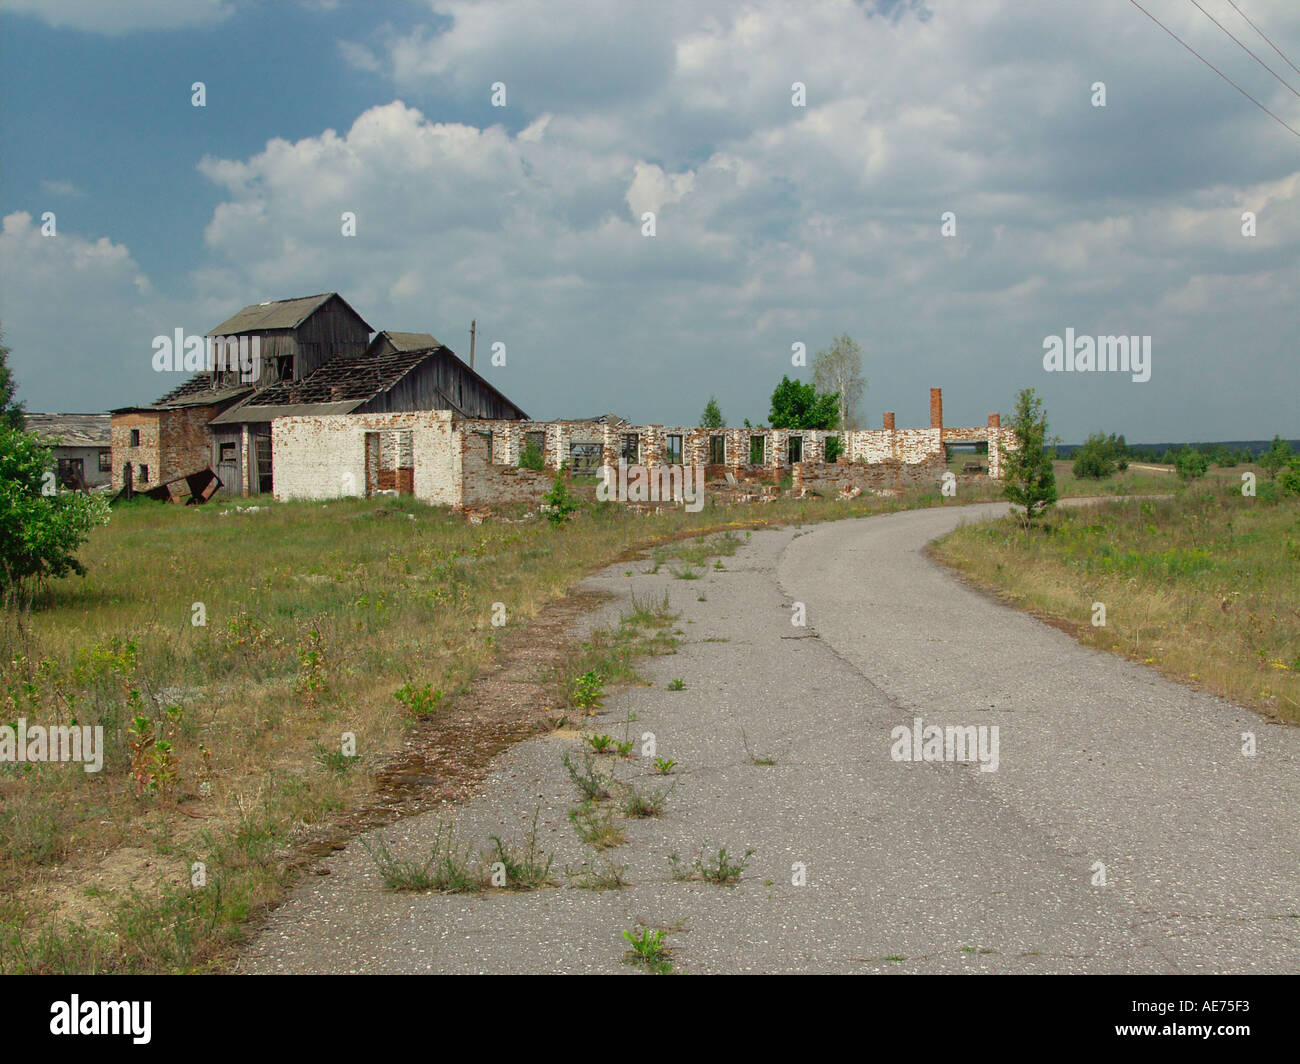 View of an open road with derelict decaying properties in Chernobyl exclusion zone Belarus - Stock Image